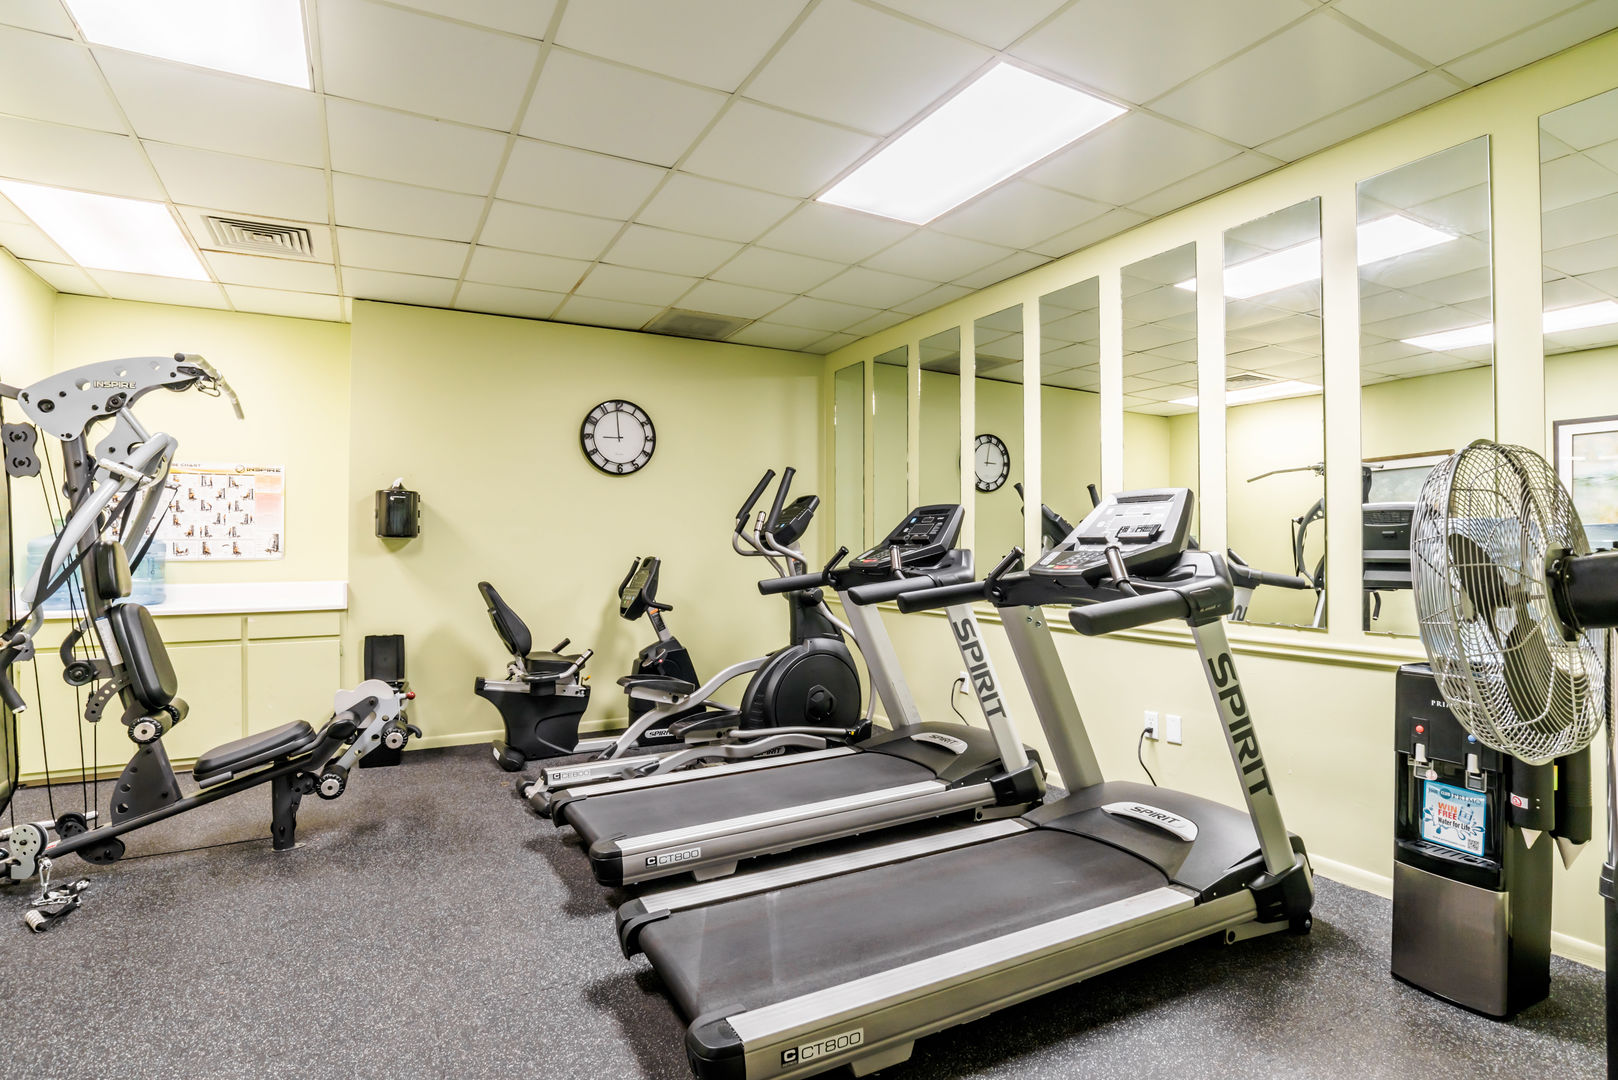 Enjoy A Fully Equipped Fitness Center at the nearby community center.